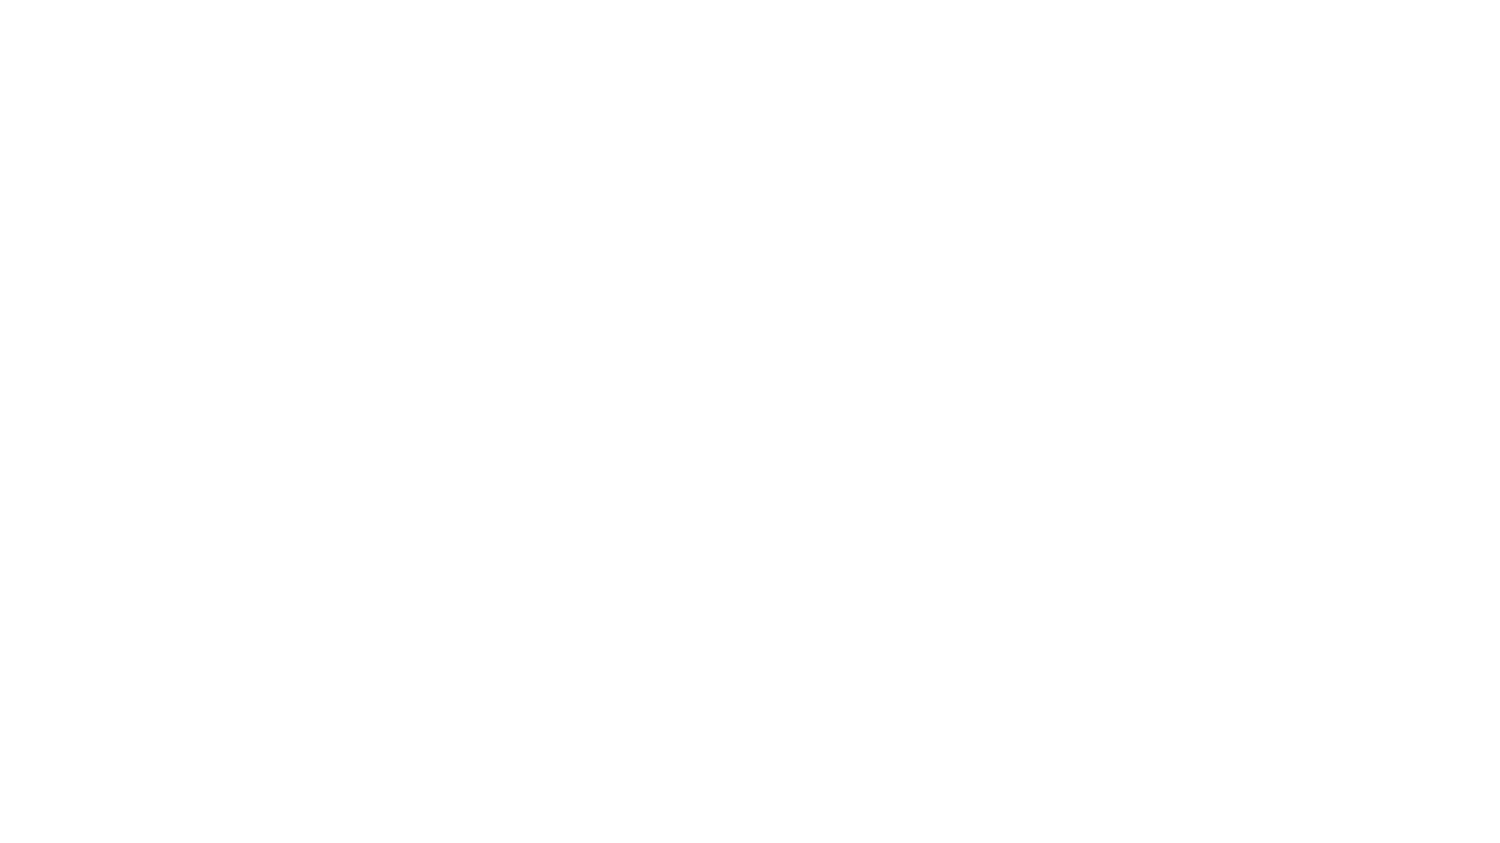 Propaganda Today | Social Media Marketing | Content Creation